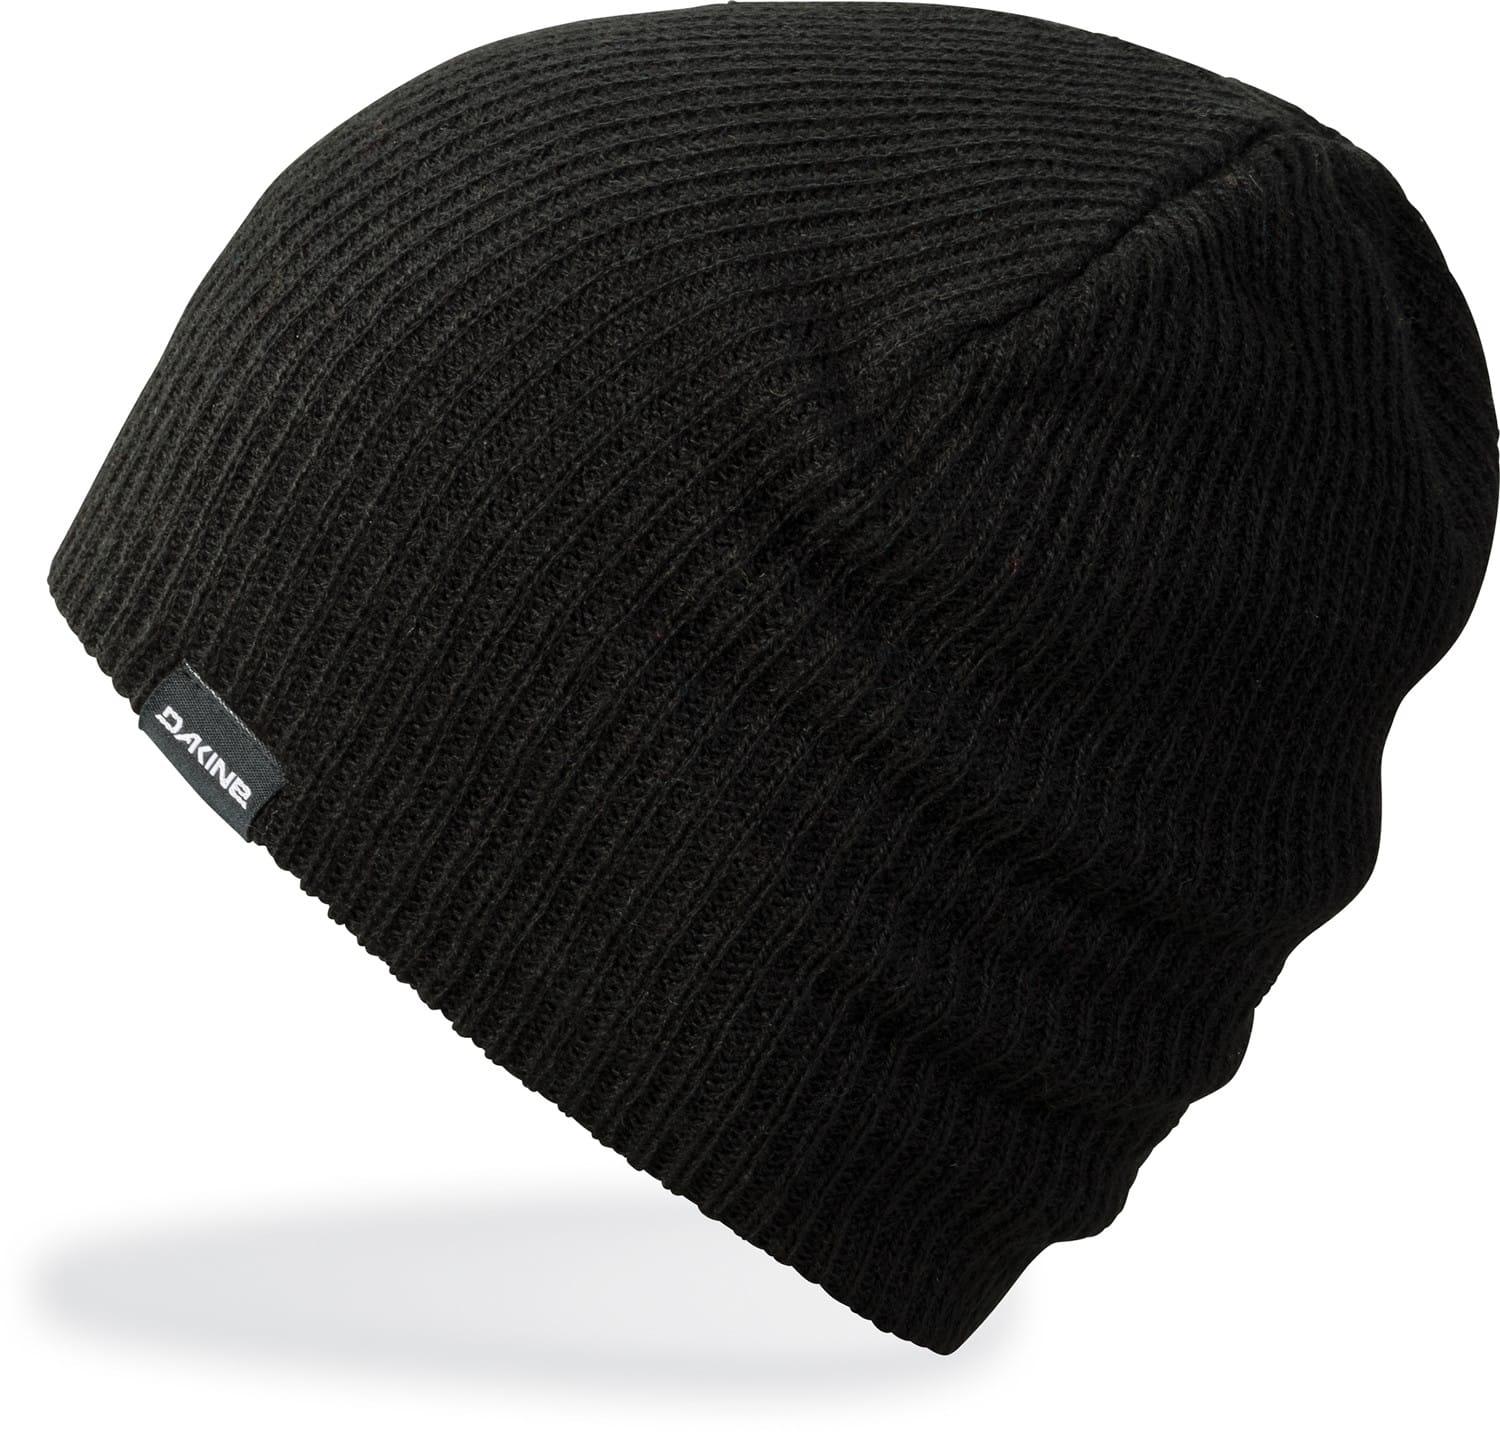 Black Tall Boy Dakine Tall Boy Beanie Black Free Shipping